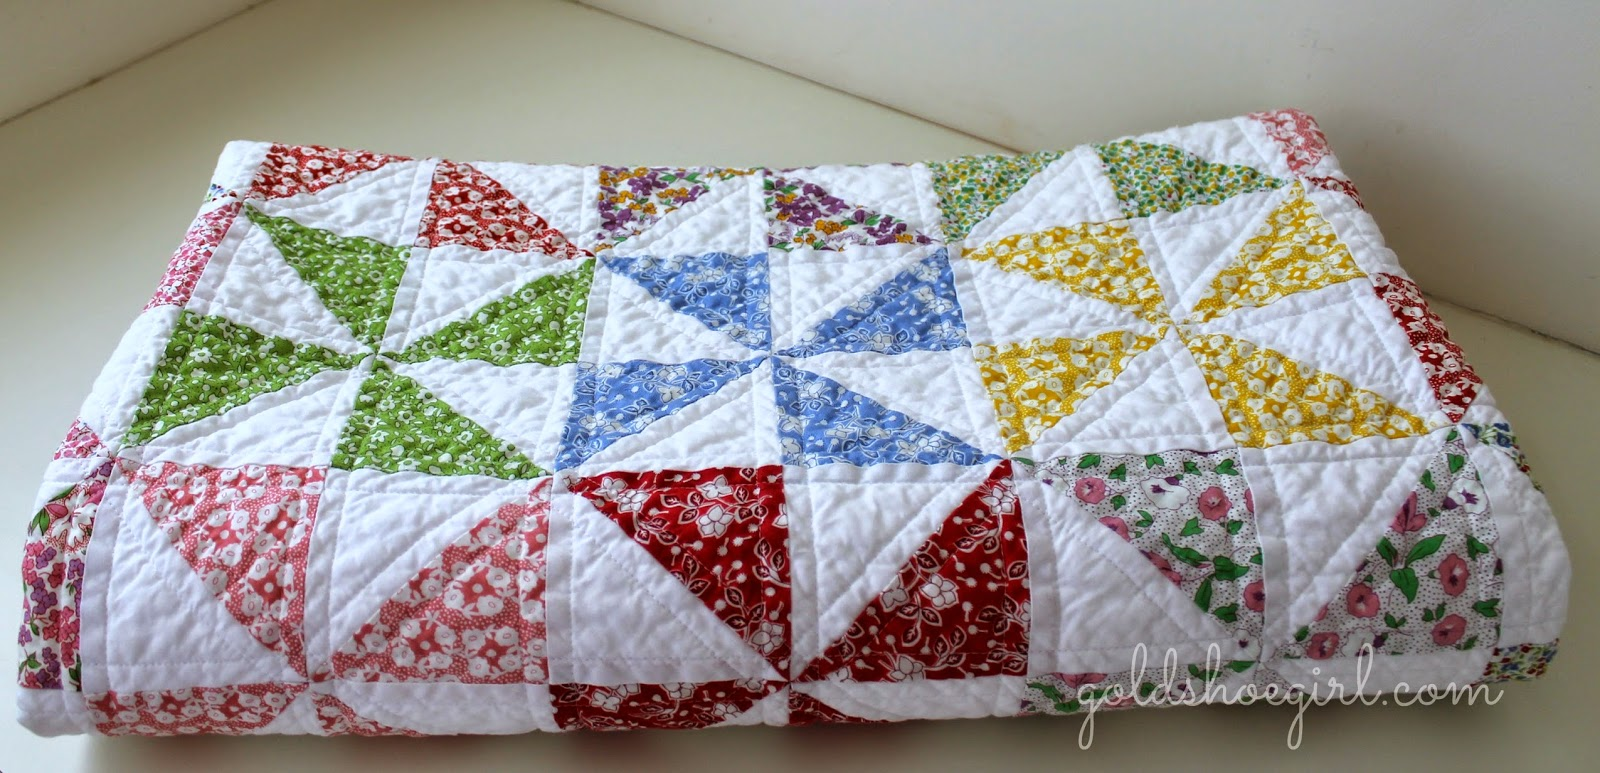 Quilt Pattern For Pinwheels : Gold Shoe Girl: Pretty Pinwheel Quilt